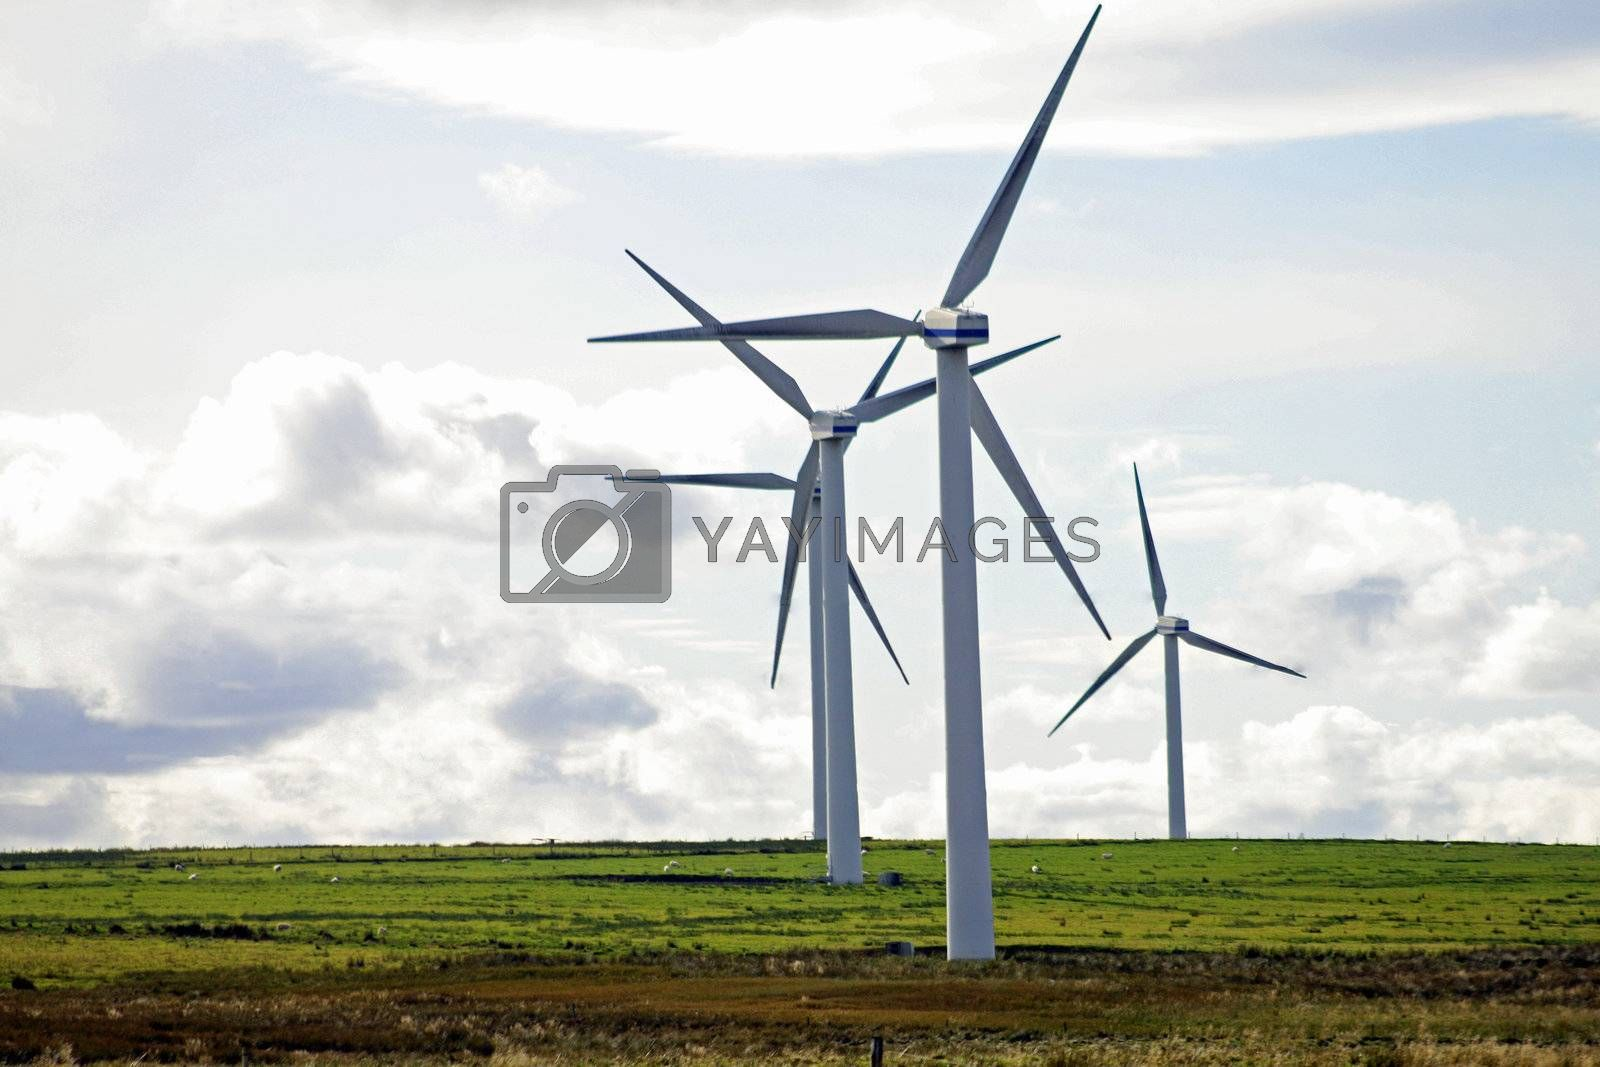 Typical windmill in a field creating aeolian energy